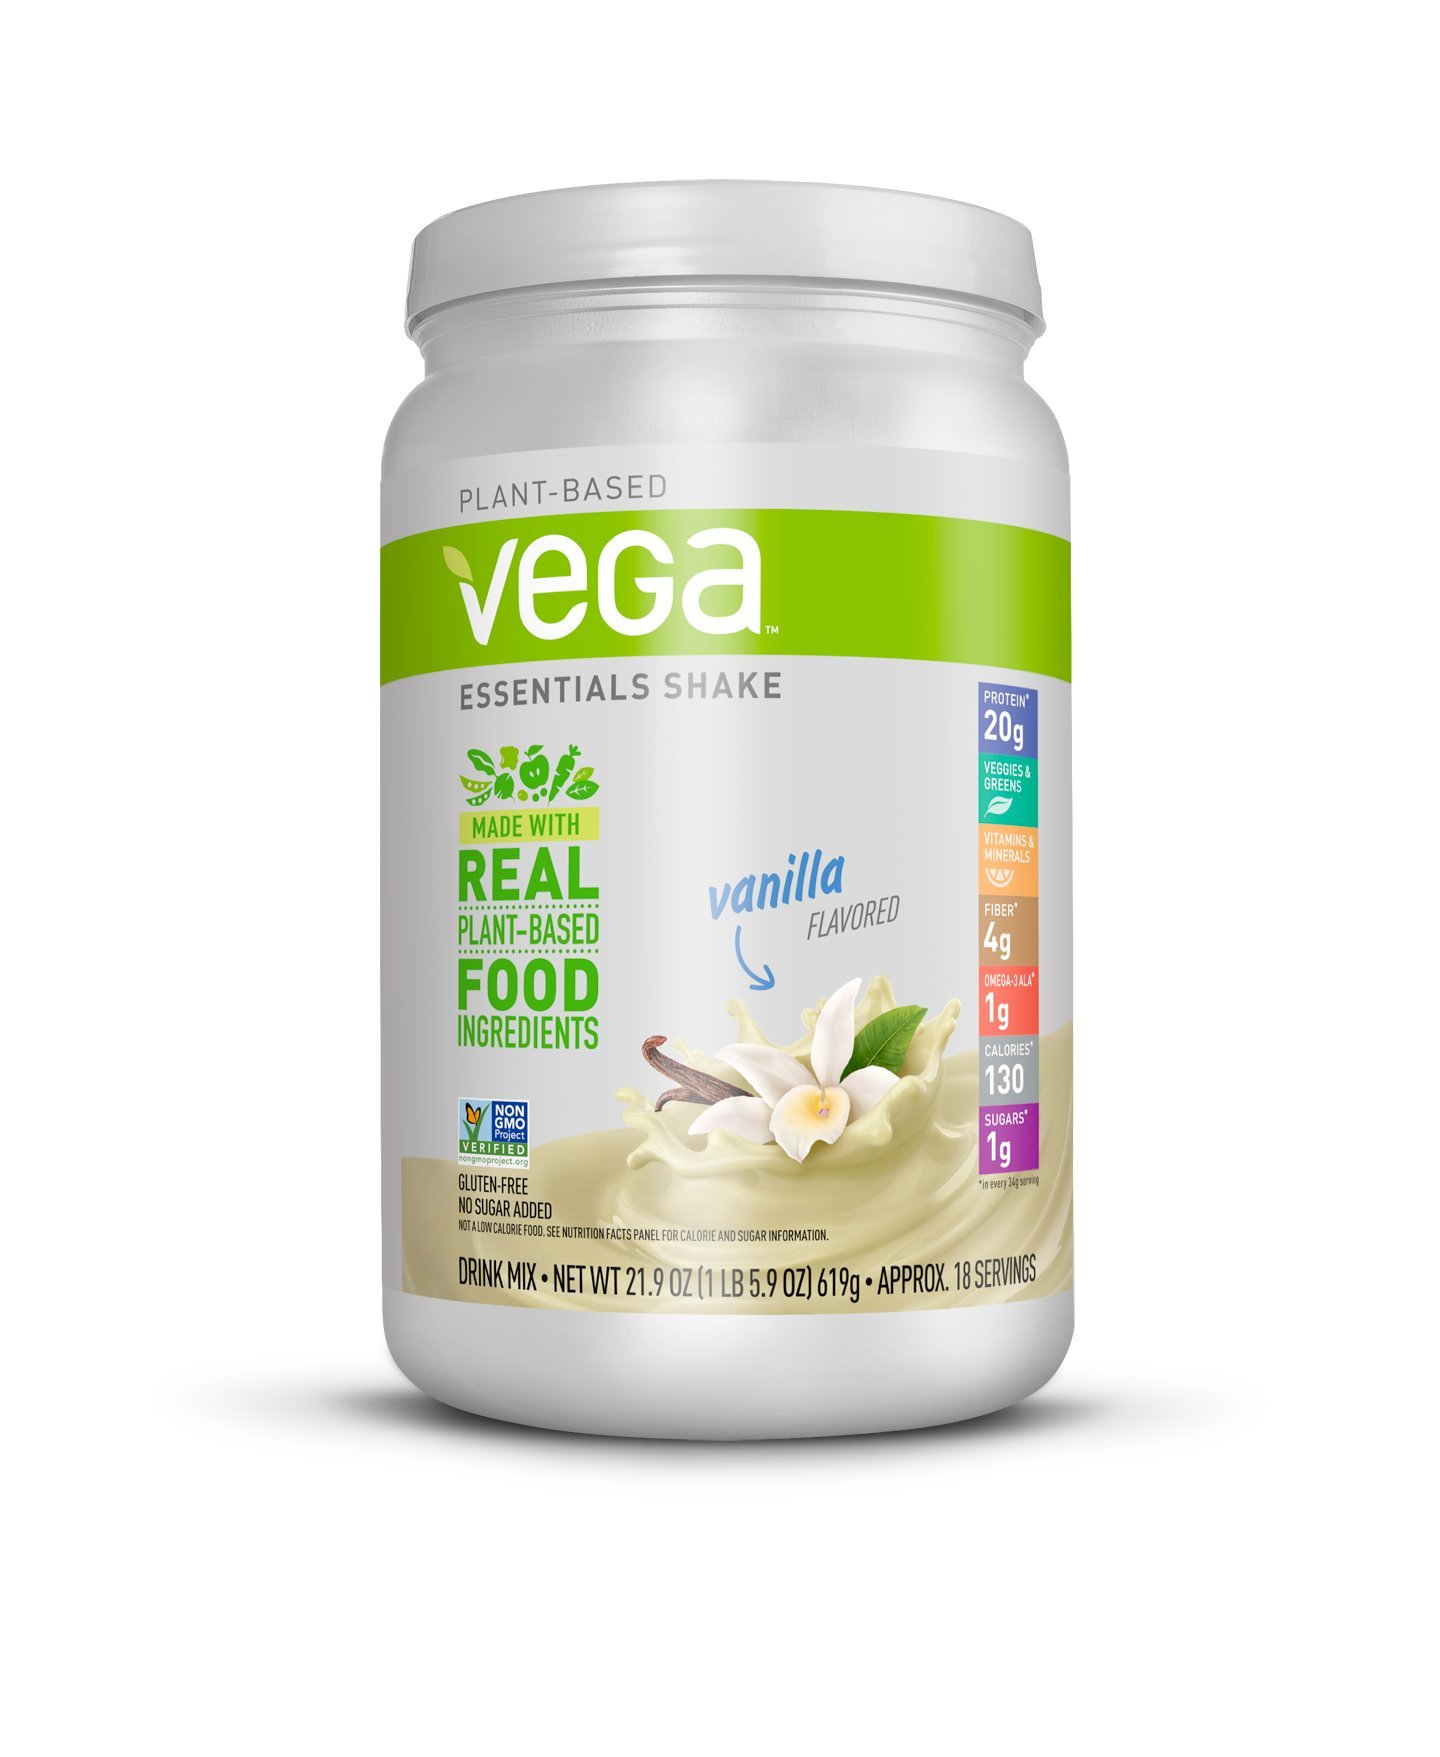 Vega Essentials Shake Vanilla (18 Servings, 21.9 Ounce) - Plant Based Vegan Protein Powder, Non Dairy, Gluten Free, Smooth and Creamy, Non GMO